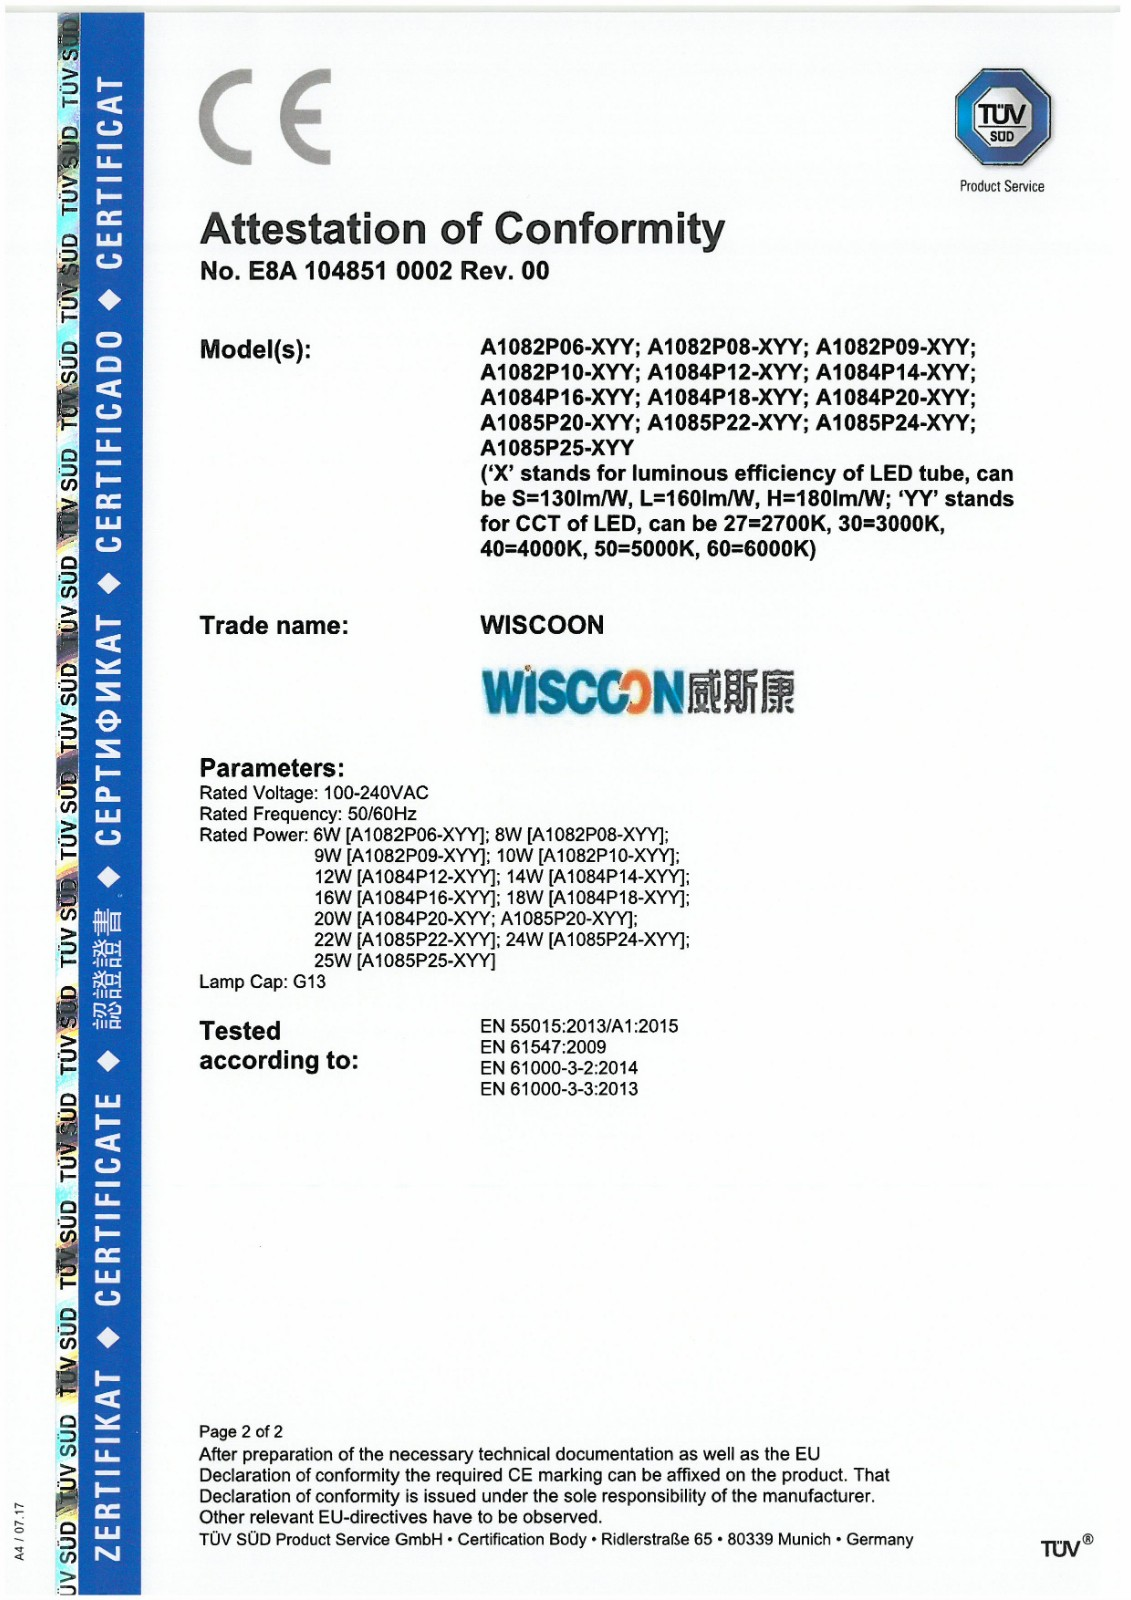 WISCOON tube LED T8 tube and LED T5 tube are TUV approved